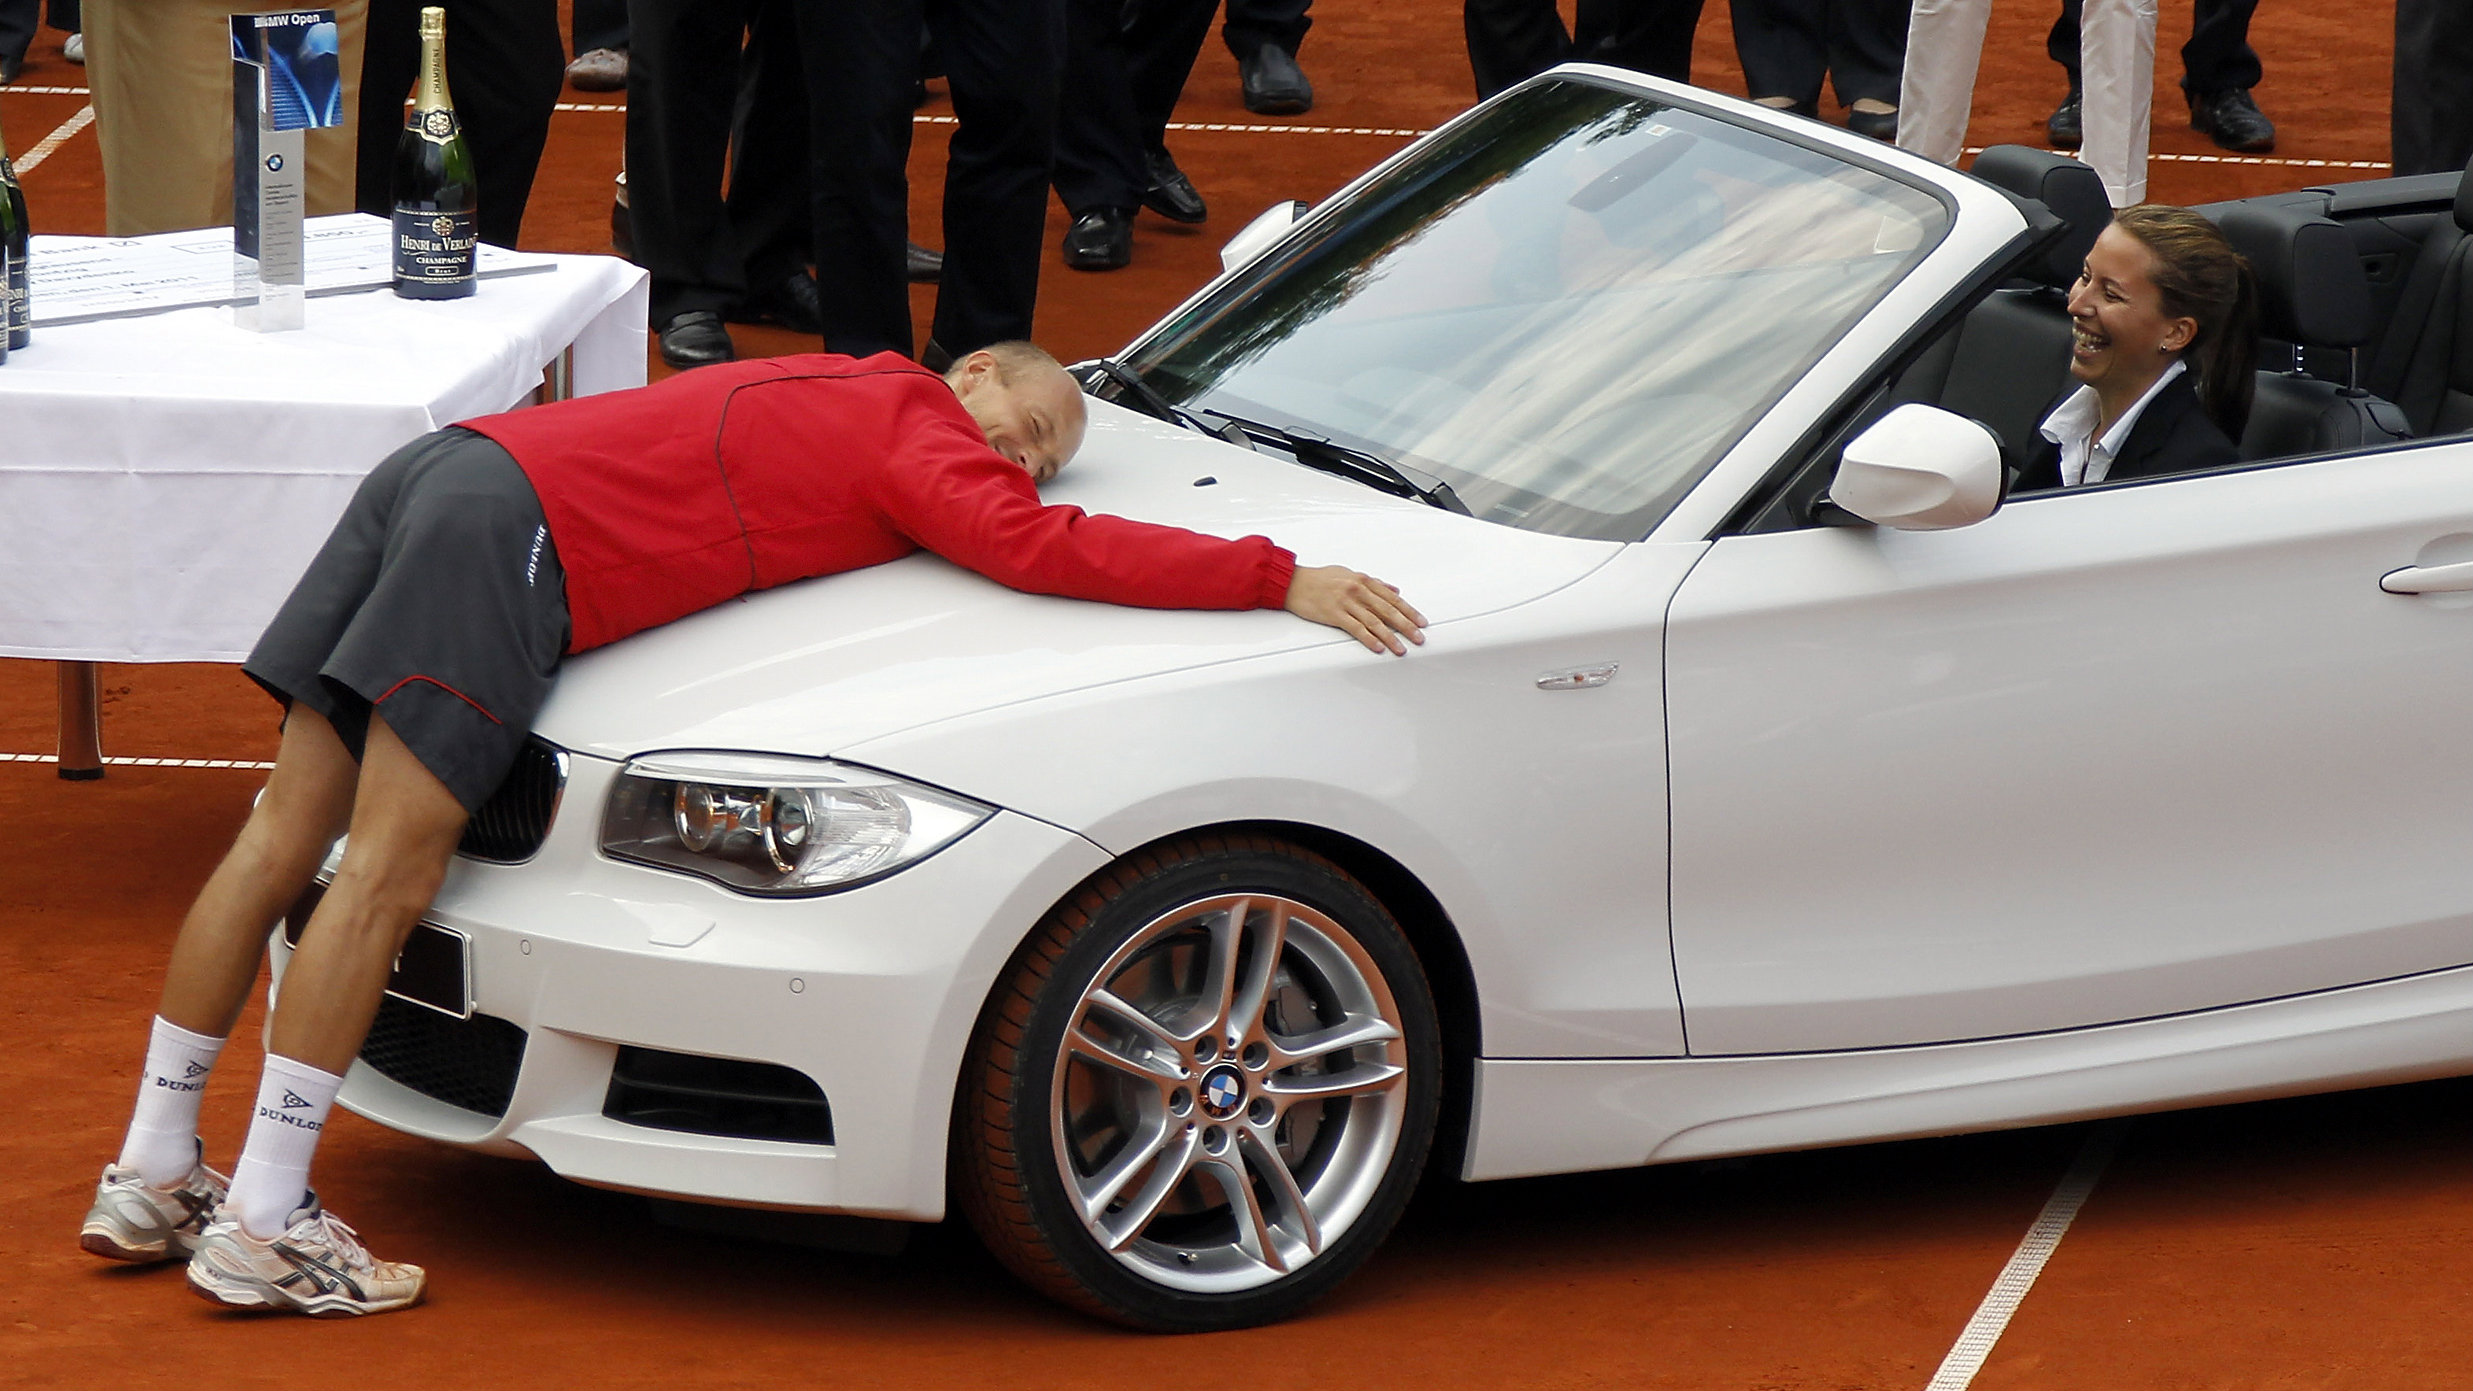 """Nikolay Davydenko from Russia reacts after winning a BMW 1 after defeating Florian Mayer from Germany in the final of ATP tennis tournament """"BMW Open"""" in Munich May 1, 2011."""